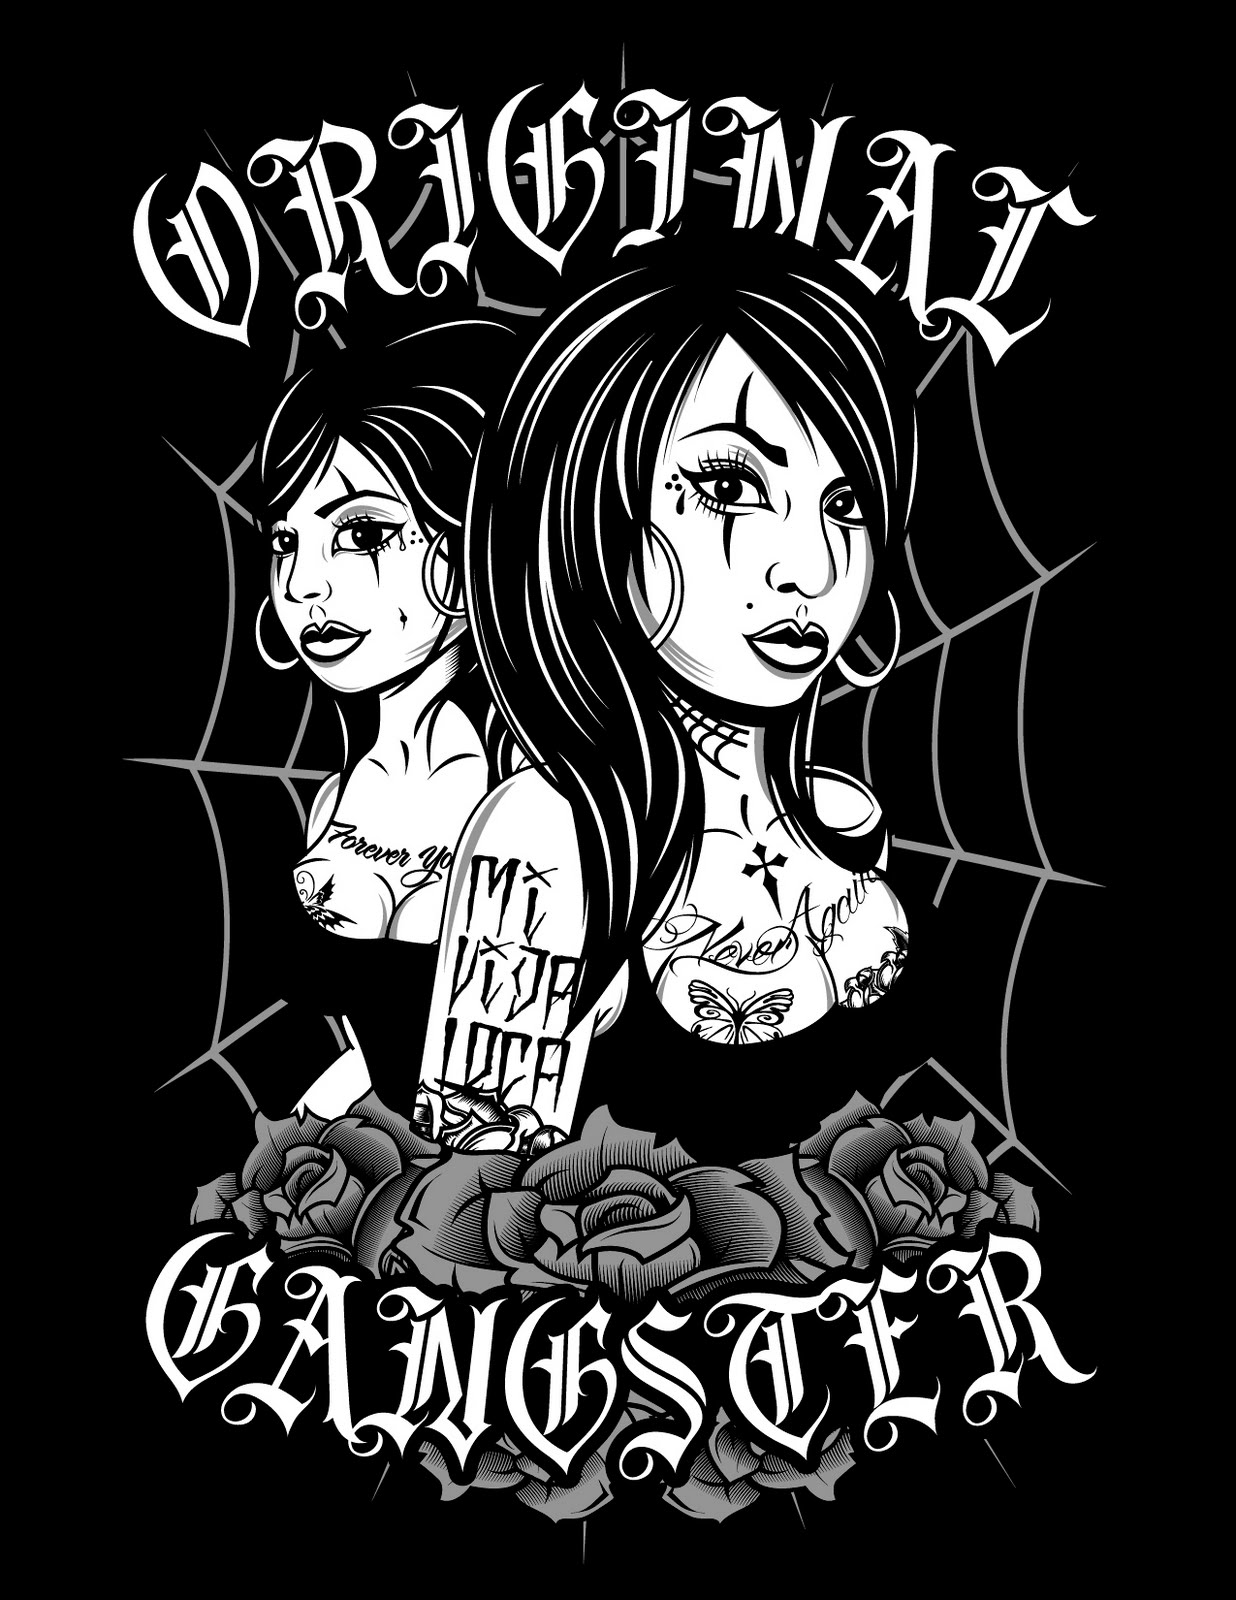 ORIGINAL FAMILY: OG 2011 T-SHIRT DESIGNS